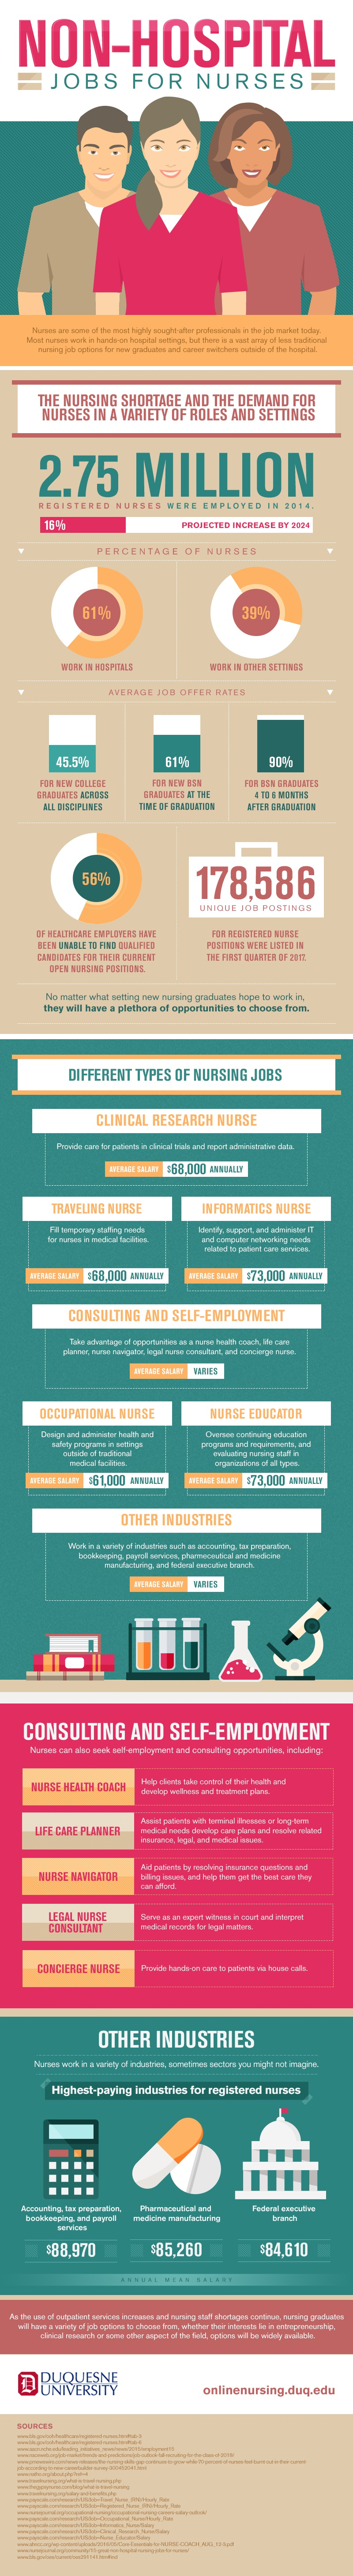 Professional Opportunities Beyond Hospitals for Nurses - Infographic